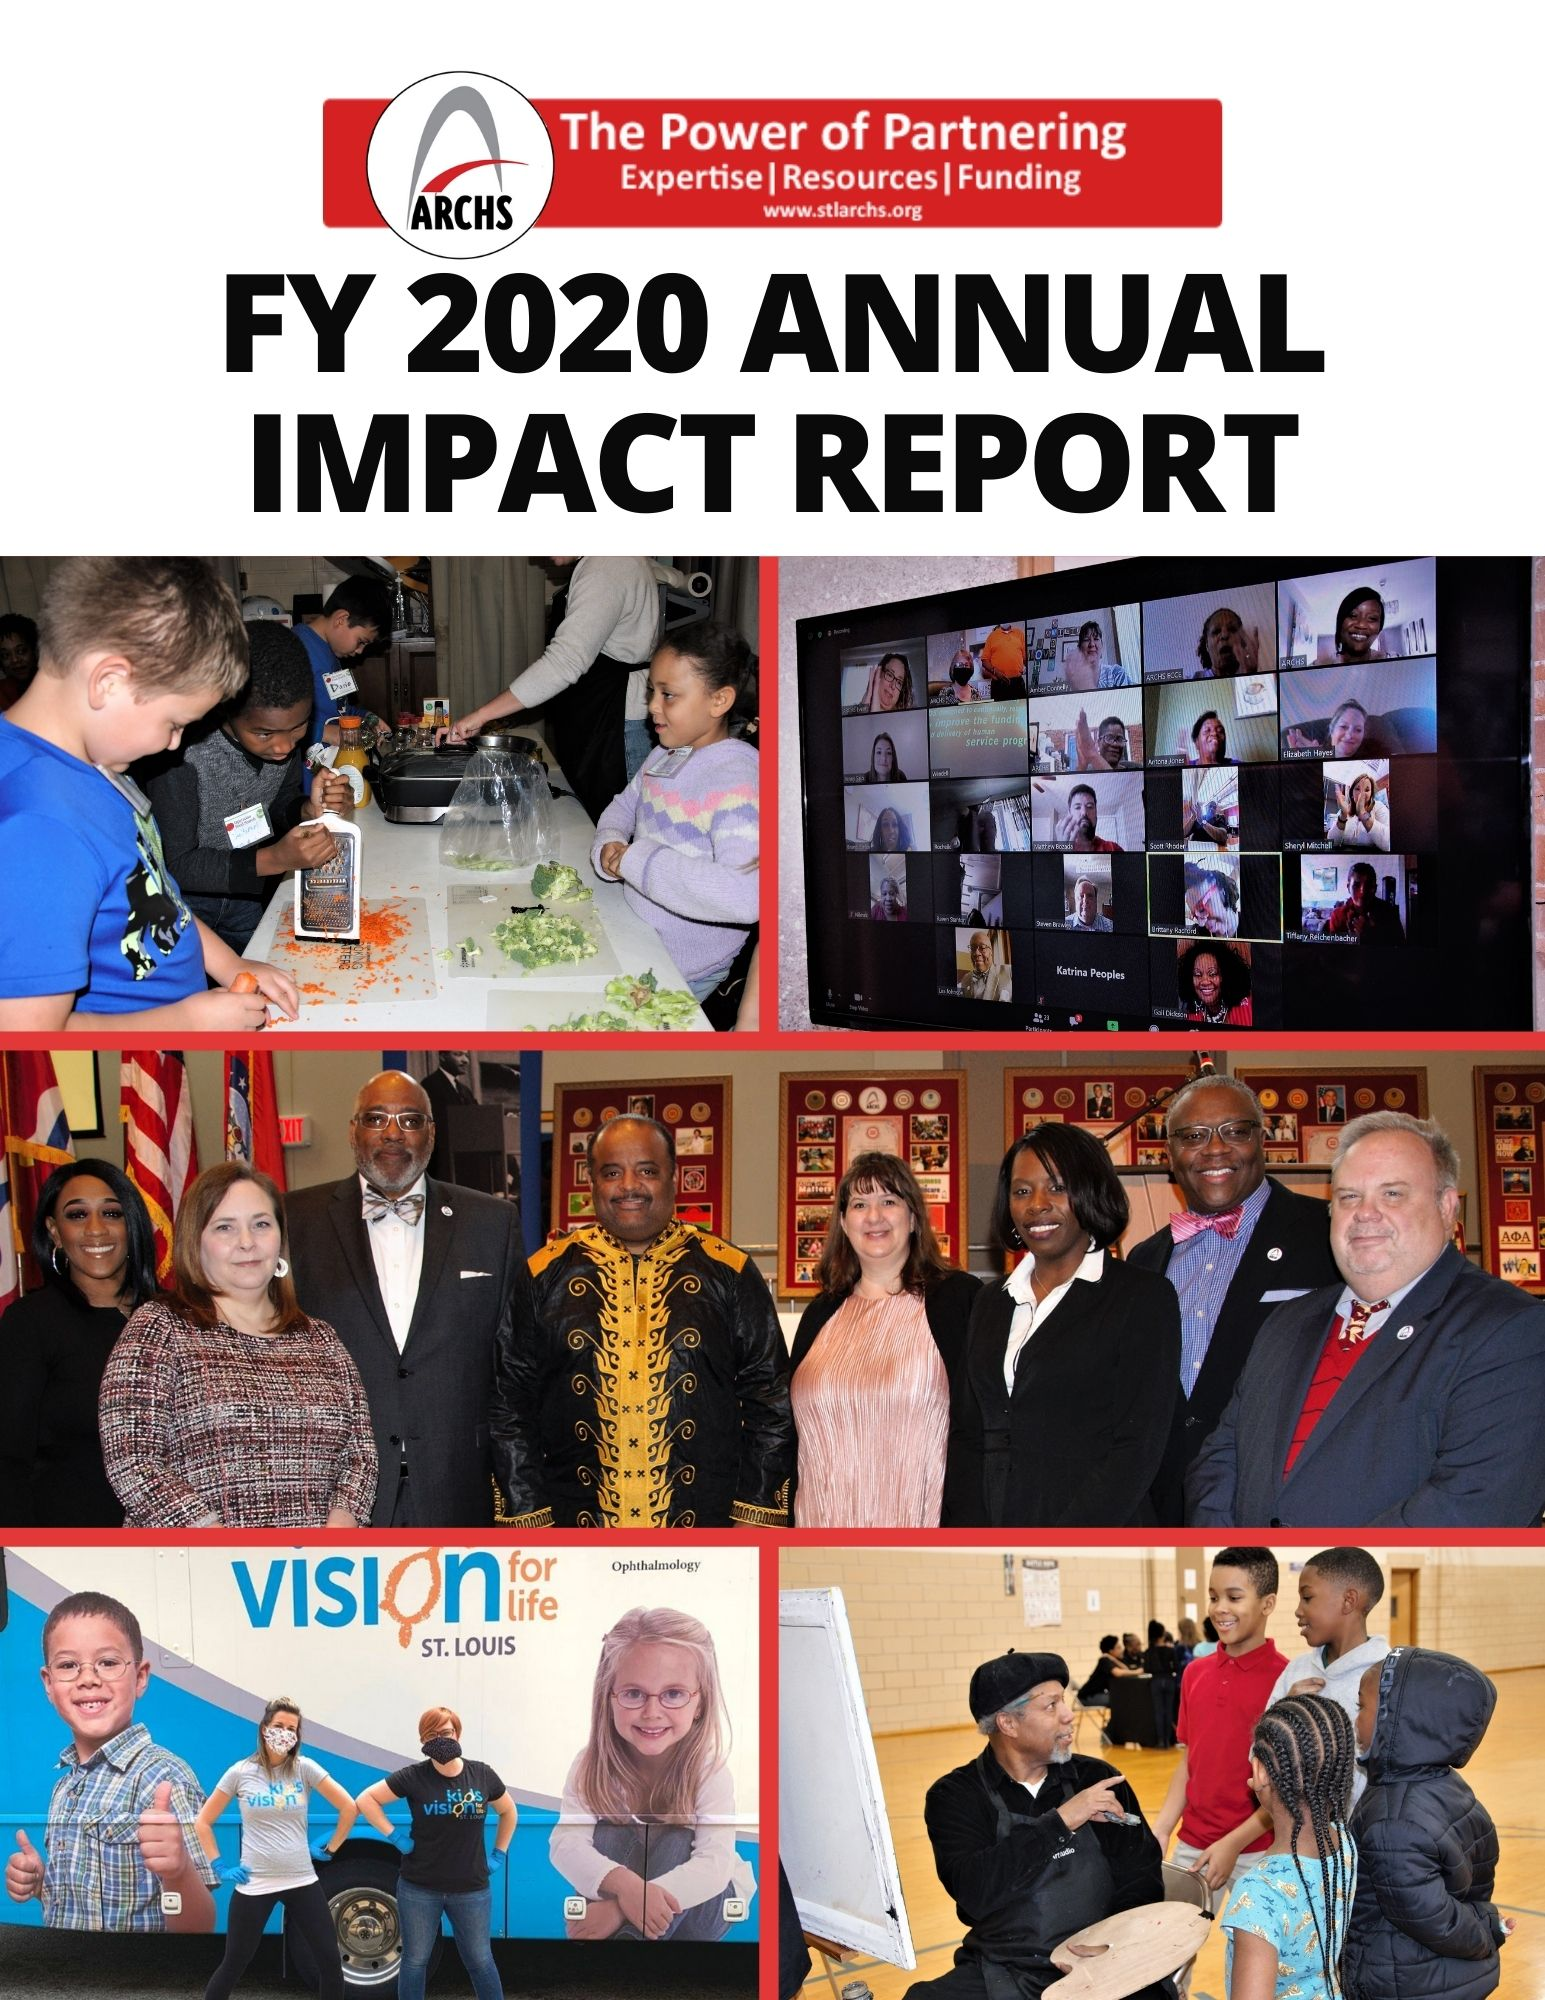 ARCHS FY 2020 Annual Impact Report